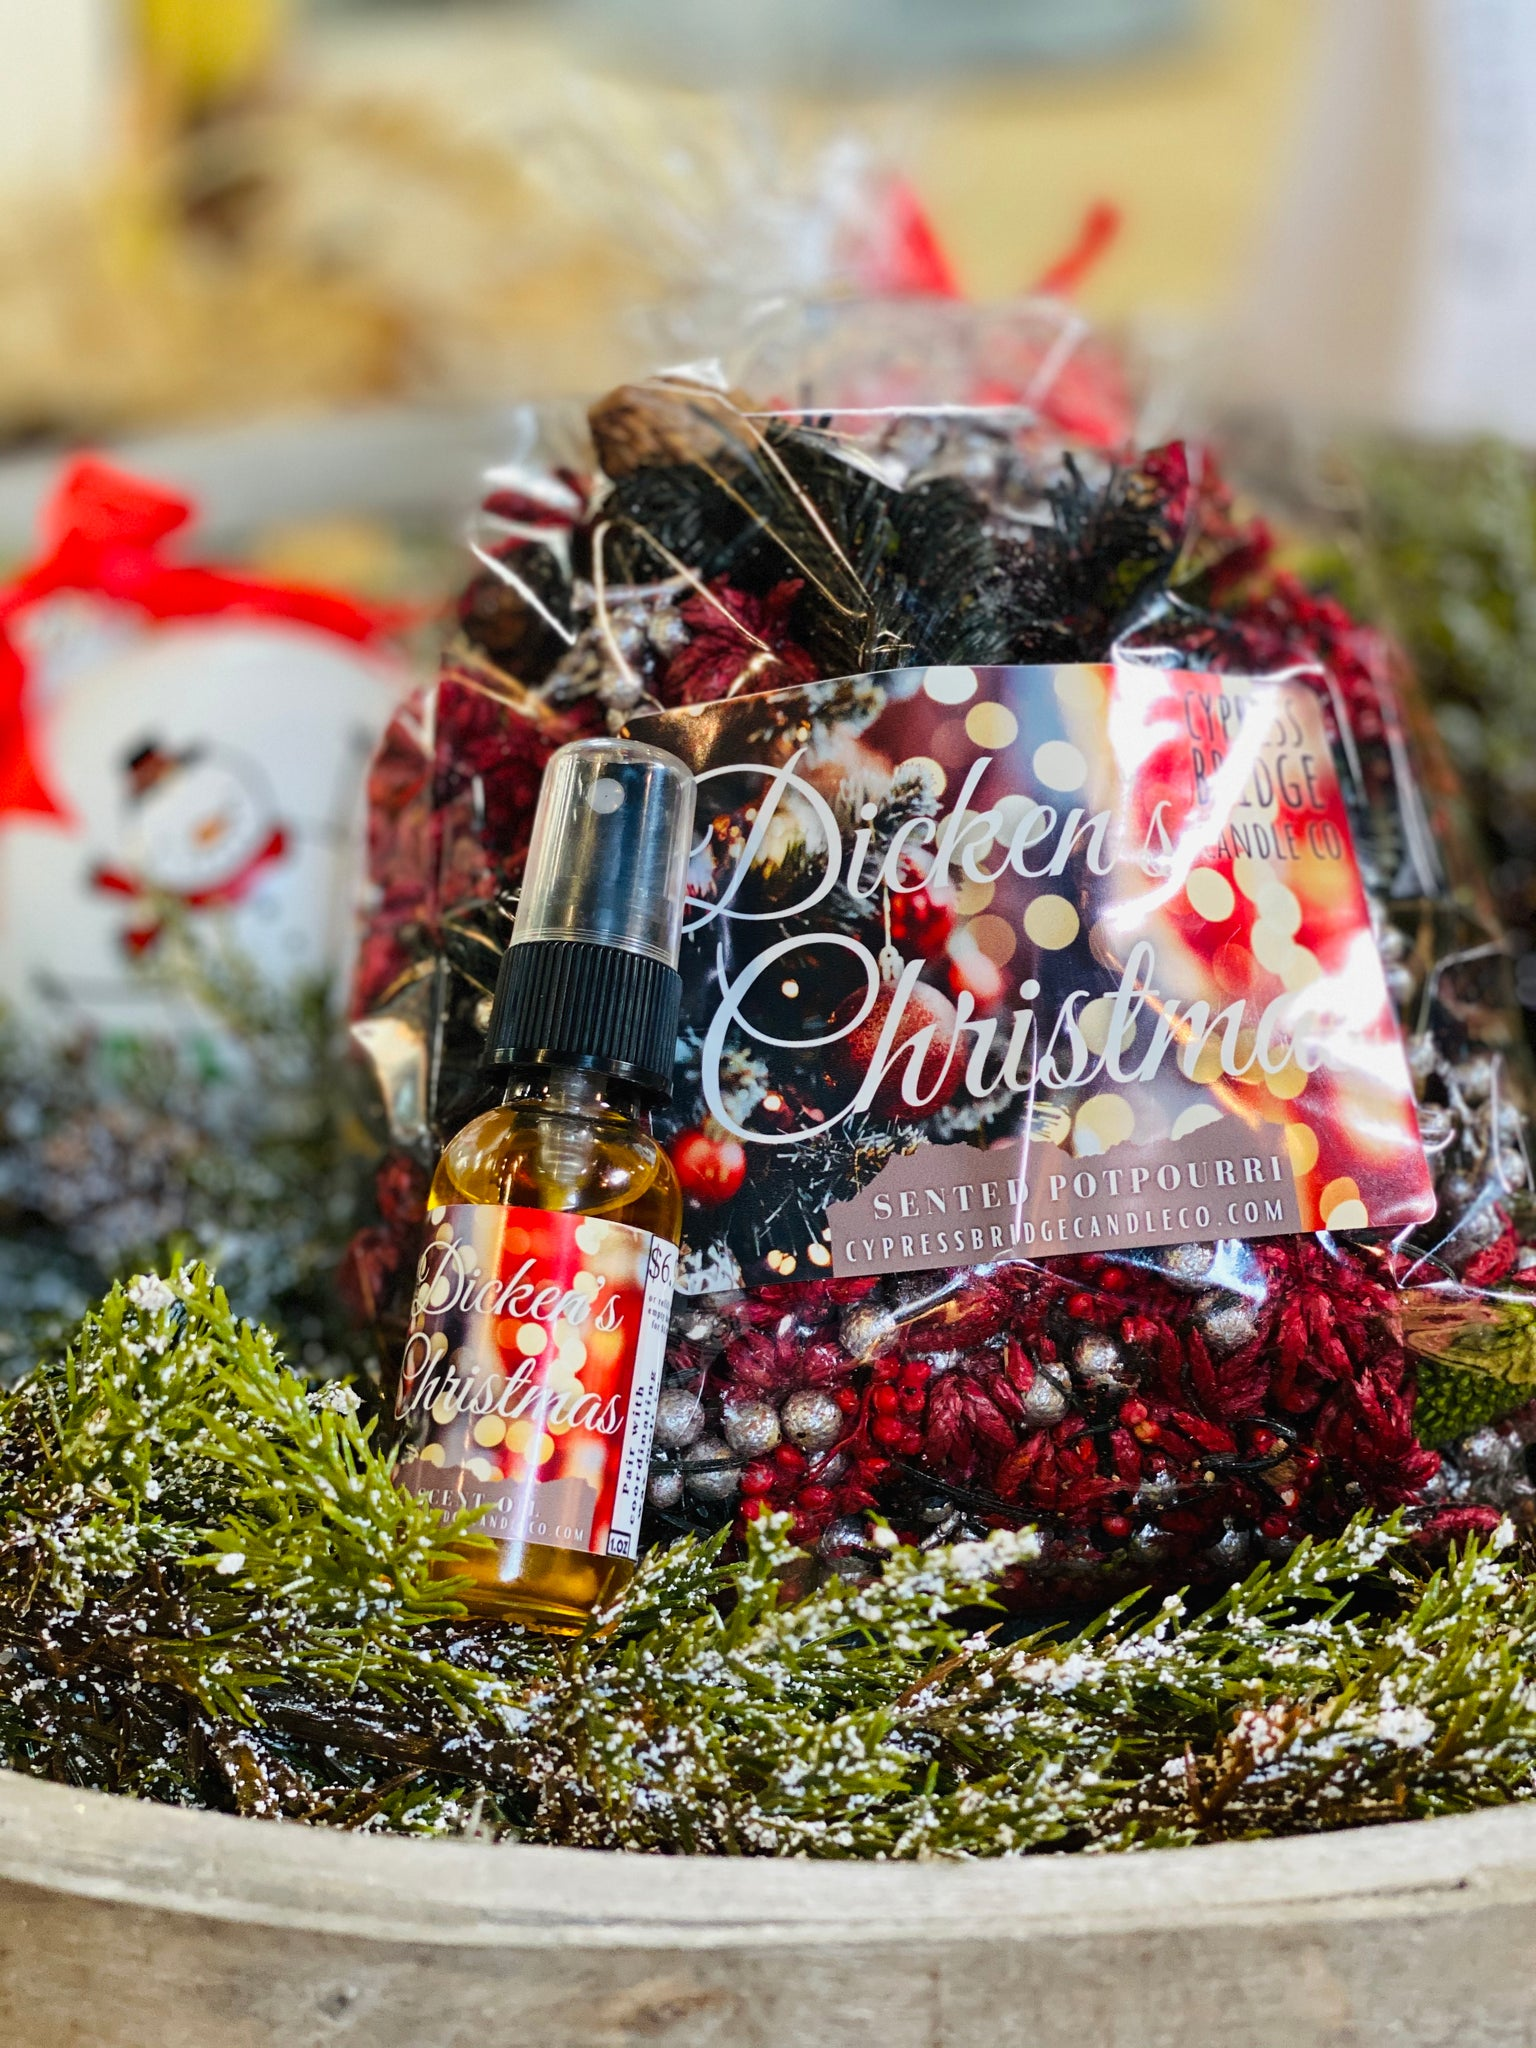 Dickens Christmas Scented Potpourri + Matching Spray Refresher